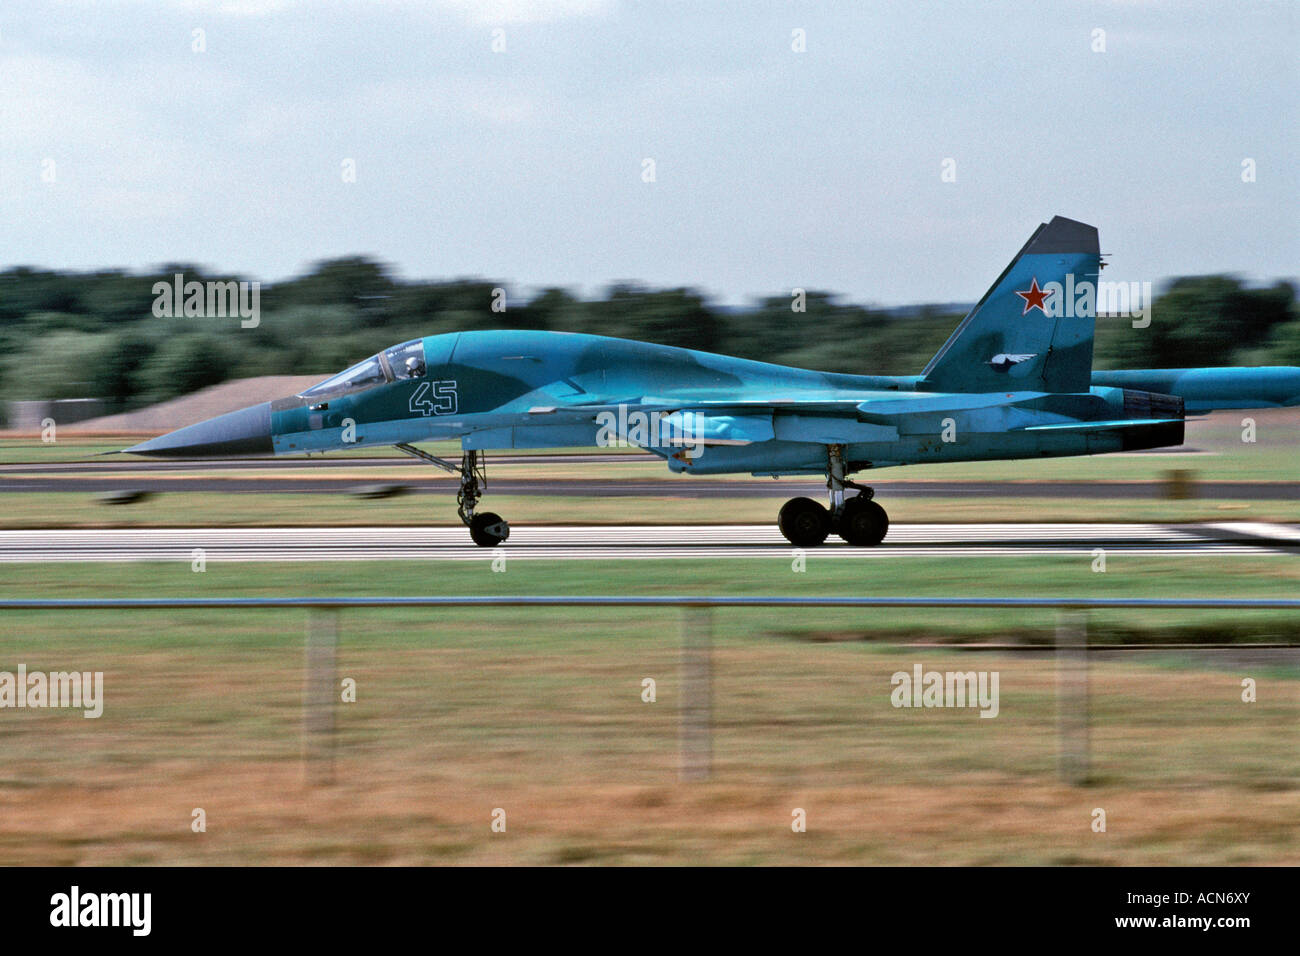 Russian Sukhoi SU-27 Flanker fighter jet taking off at the Farnborough airshow in England in 2000. - Stock Image